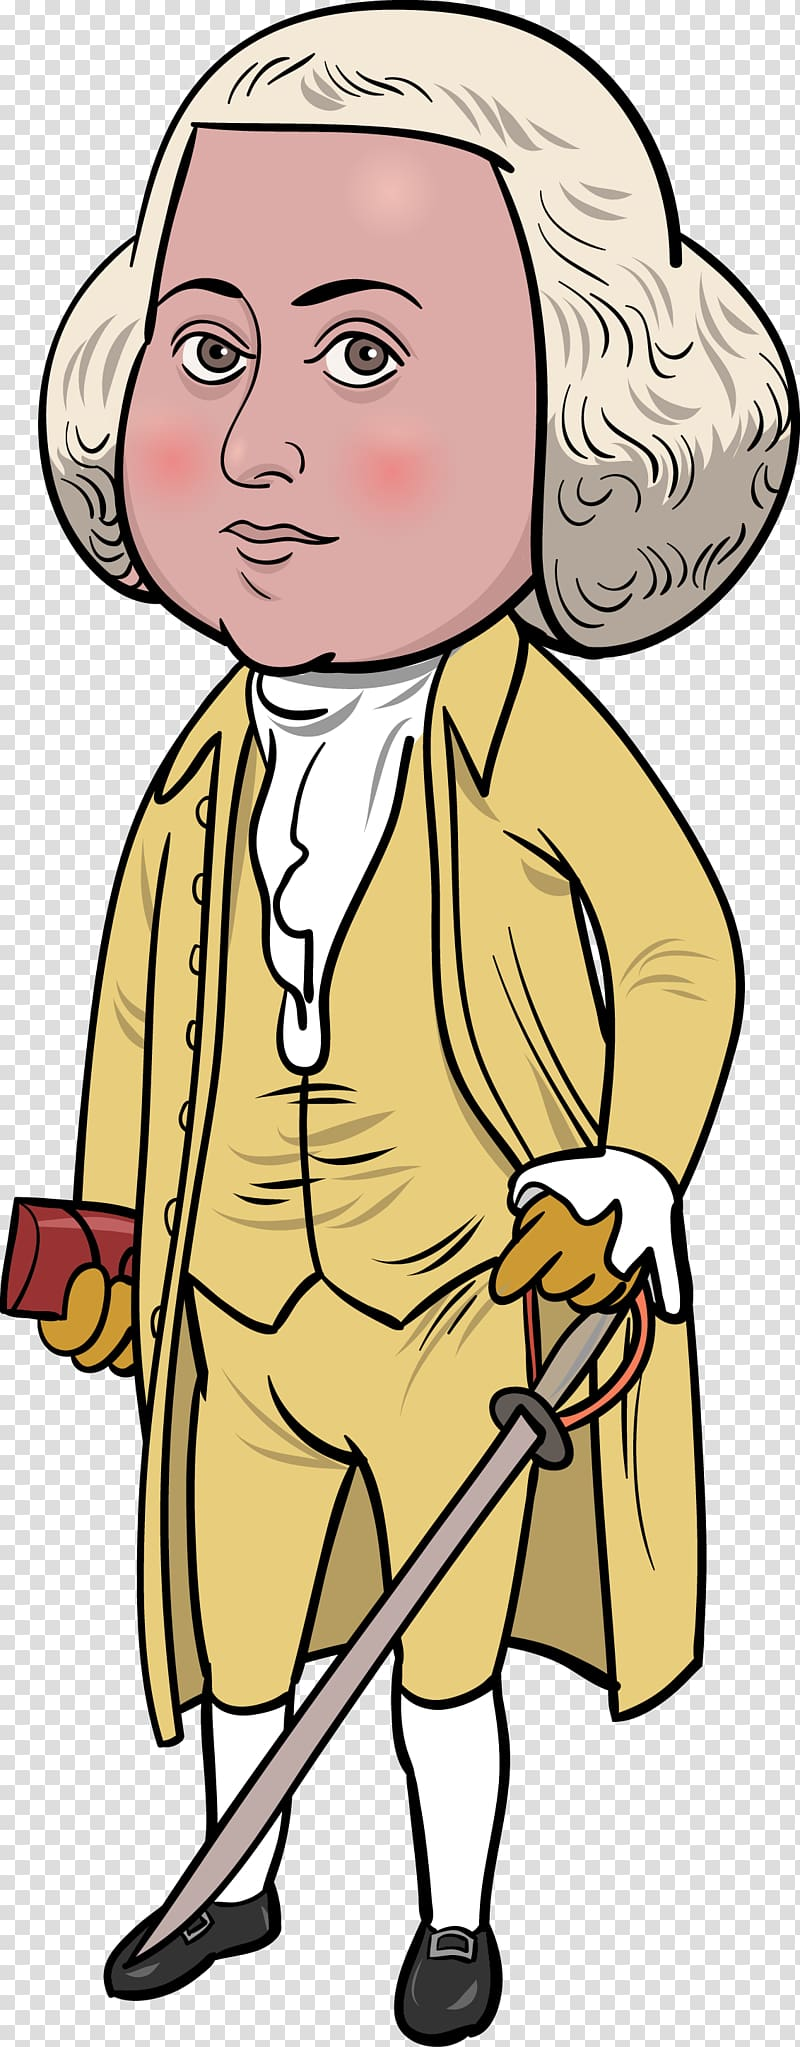 John Adams transparent background PNG cliparts free download.